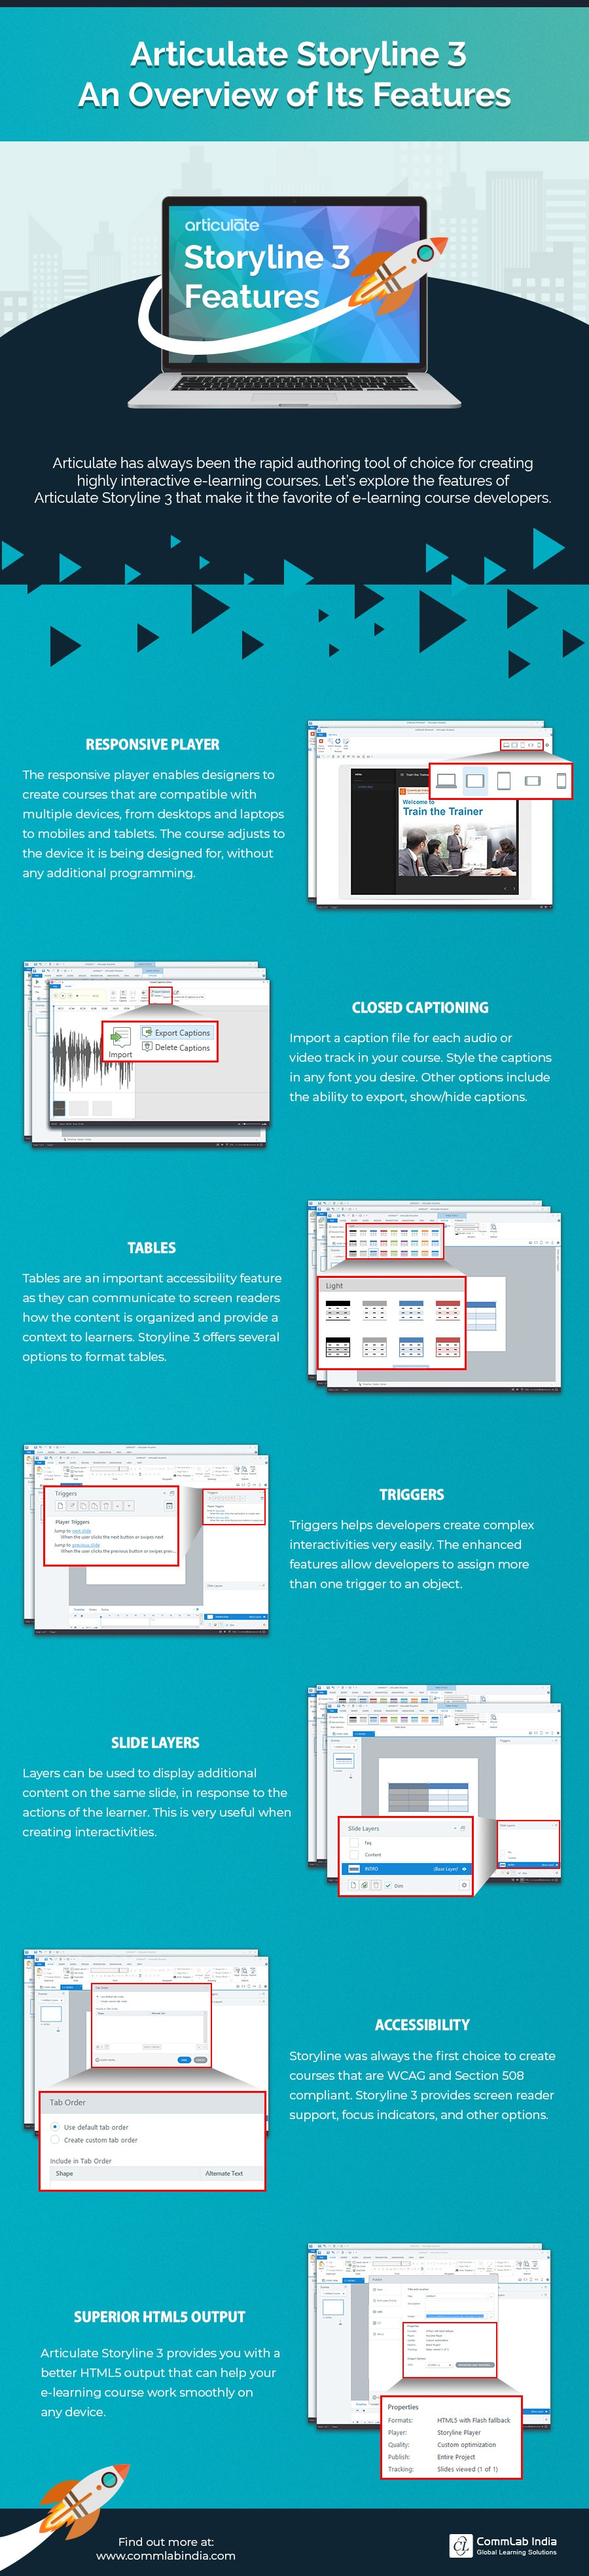 Articulate Storyline 3: An Overview of Its Features [Infographic]